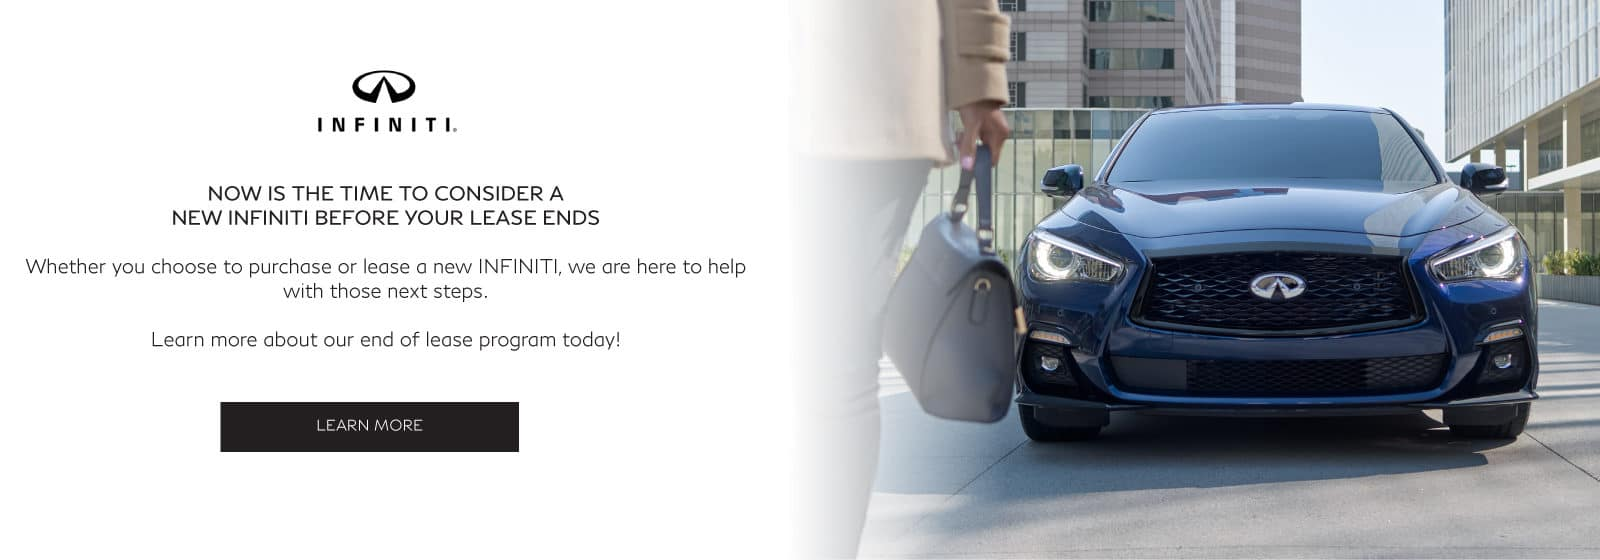 Now is the time to consider a new INFINITI before your lease ends. Whether you choose to purchase or lease a new INFINITI, we are here to help with those next steps. Learn more about our end of lease program today! Learn More